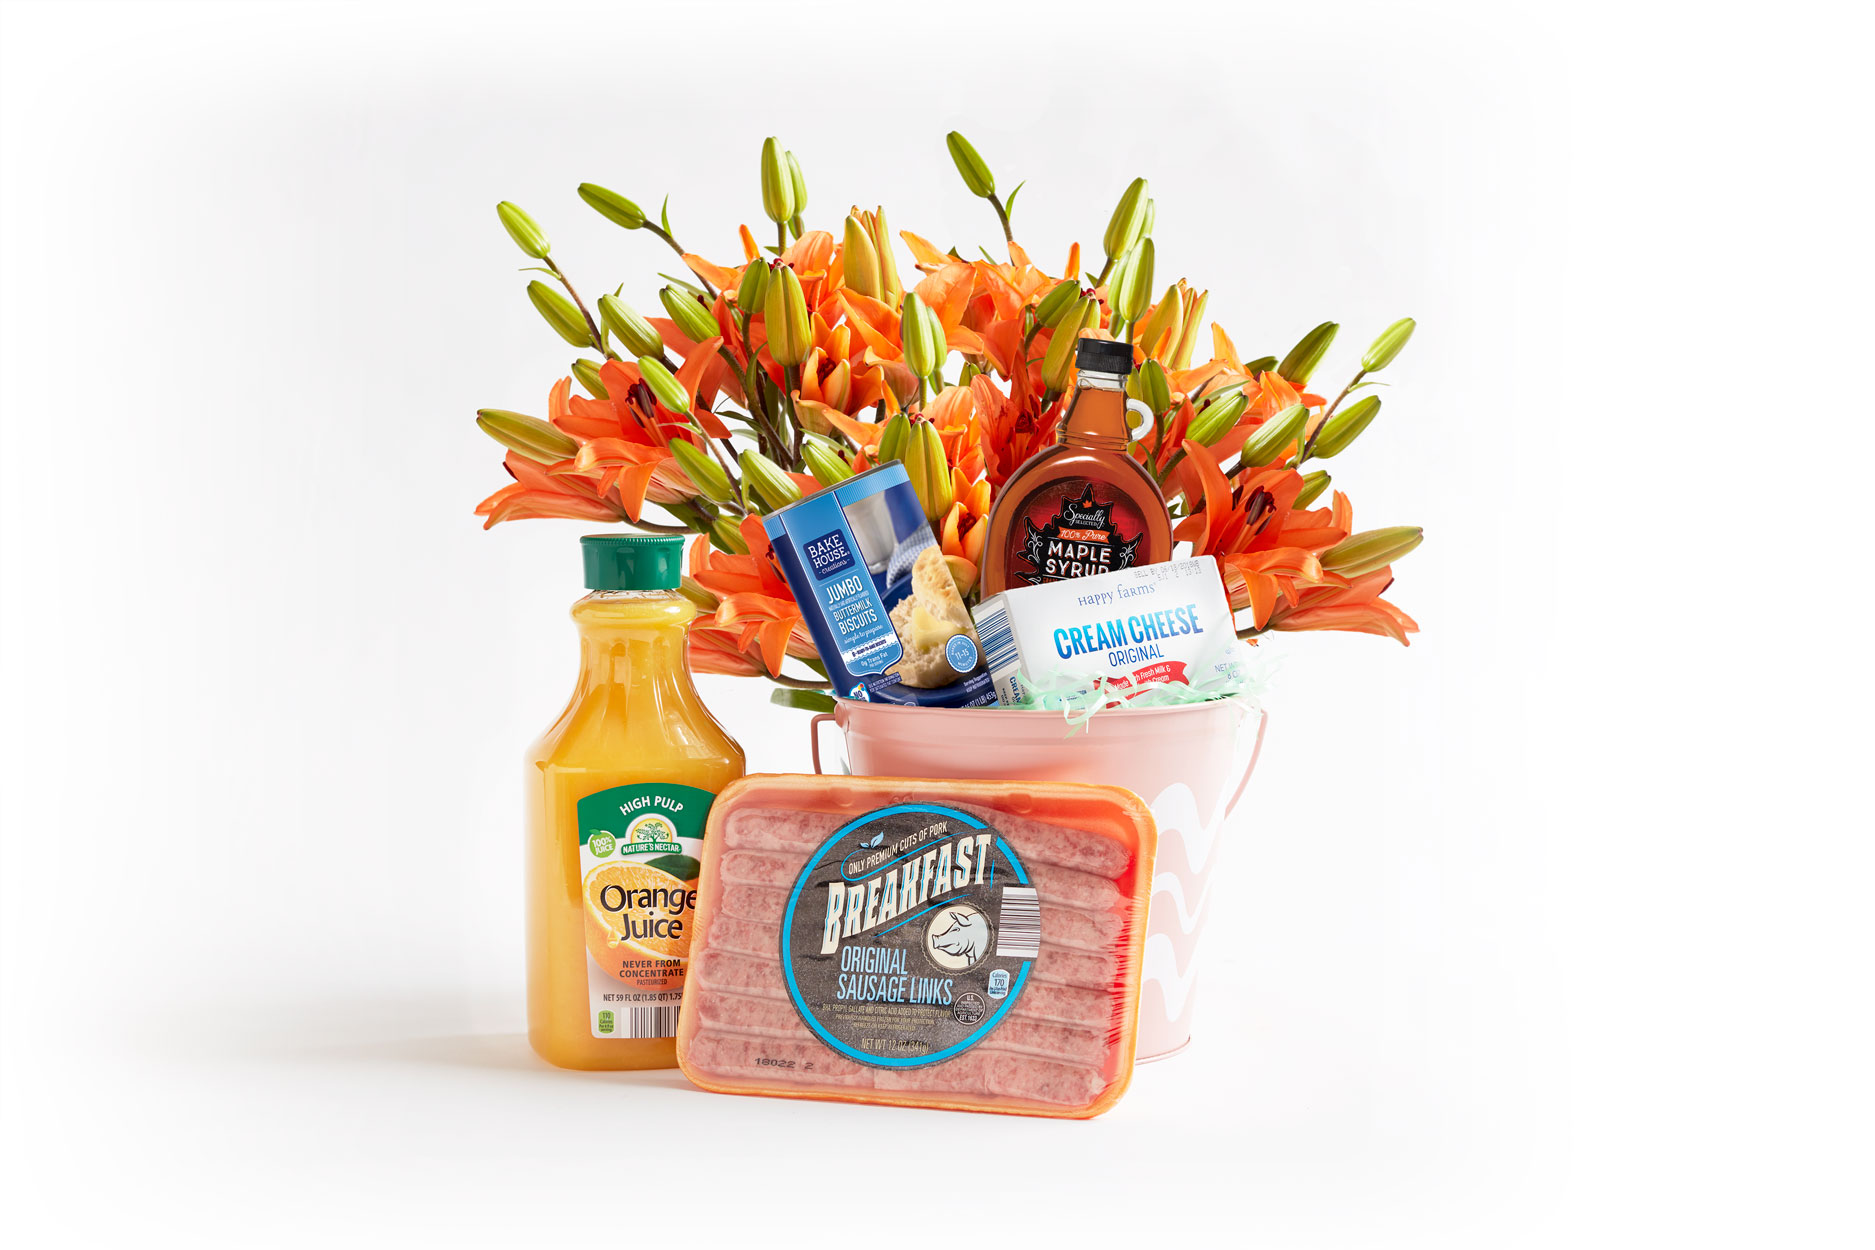 A rise and shine themed Easter basket with breakfast sausage, biscuits, maple syrup and orange juice.